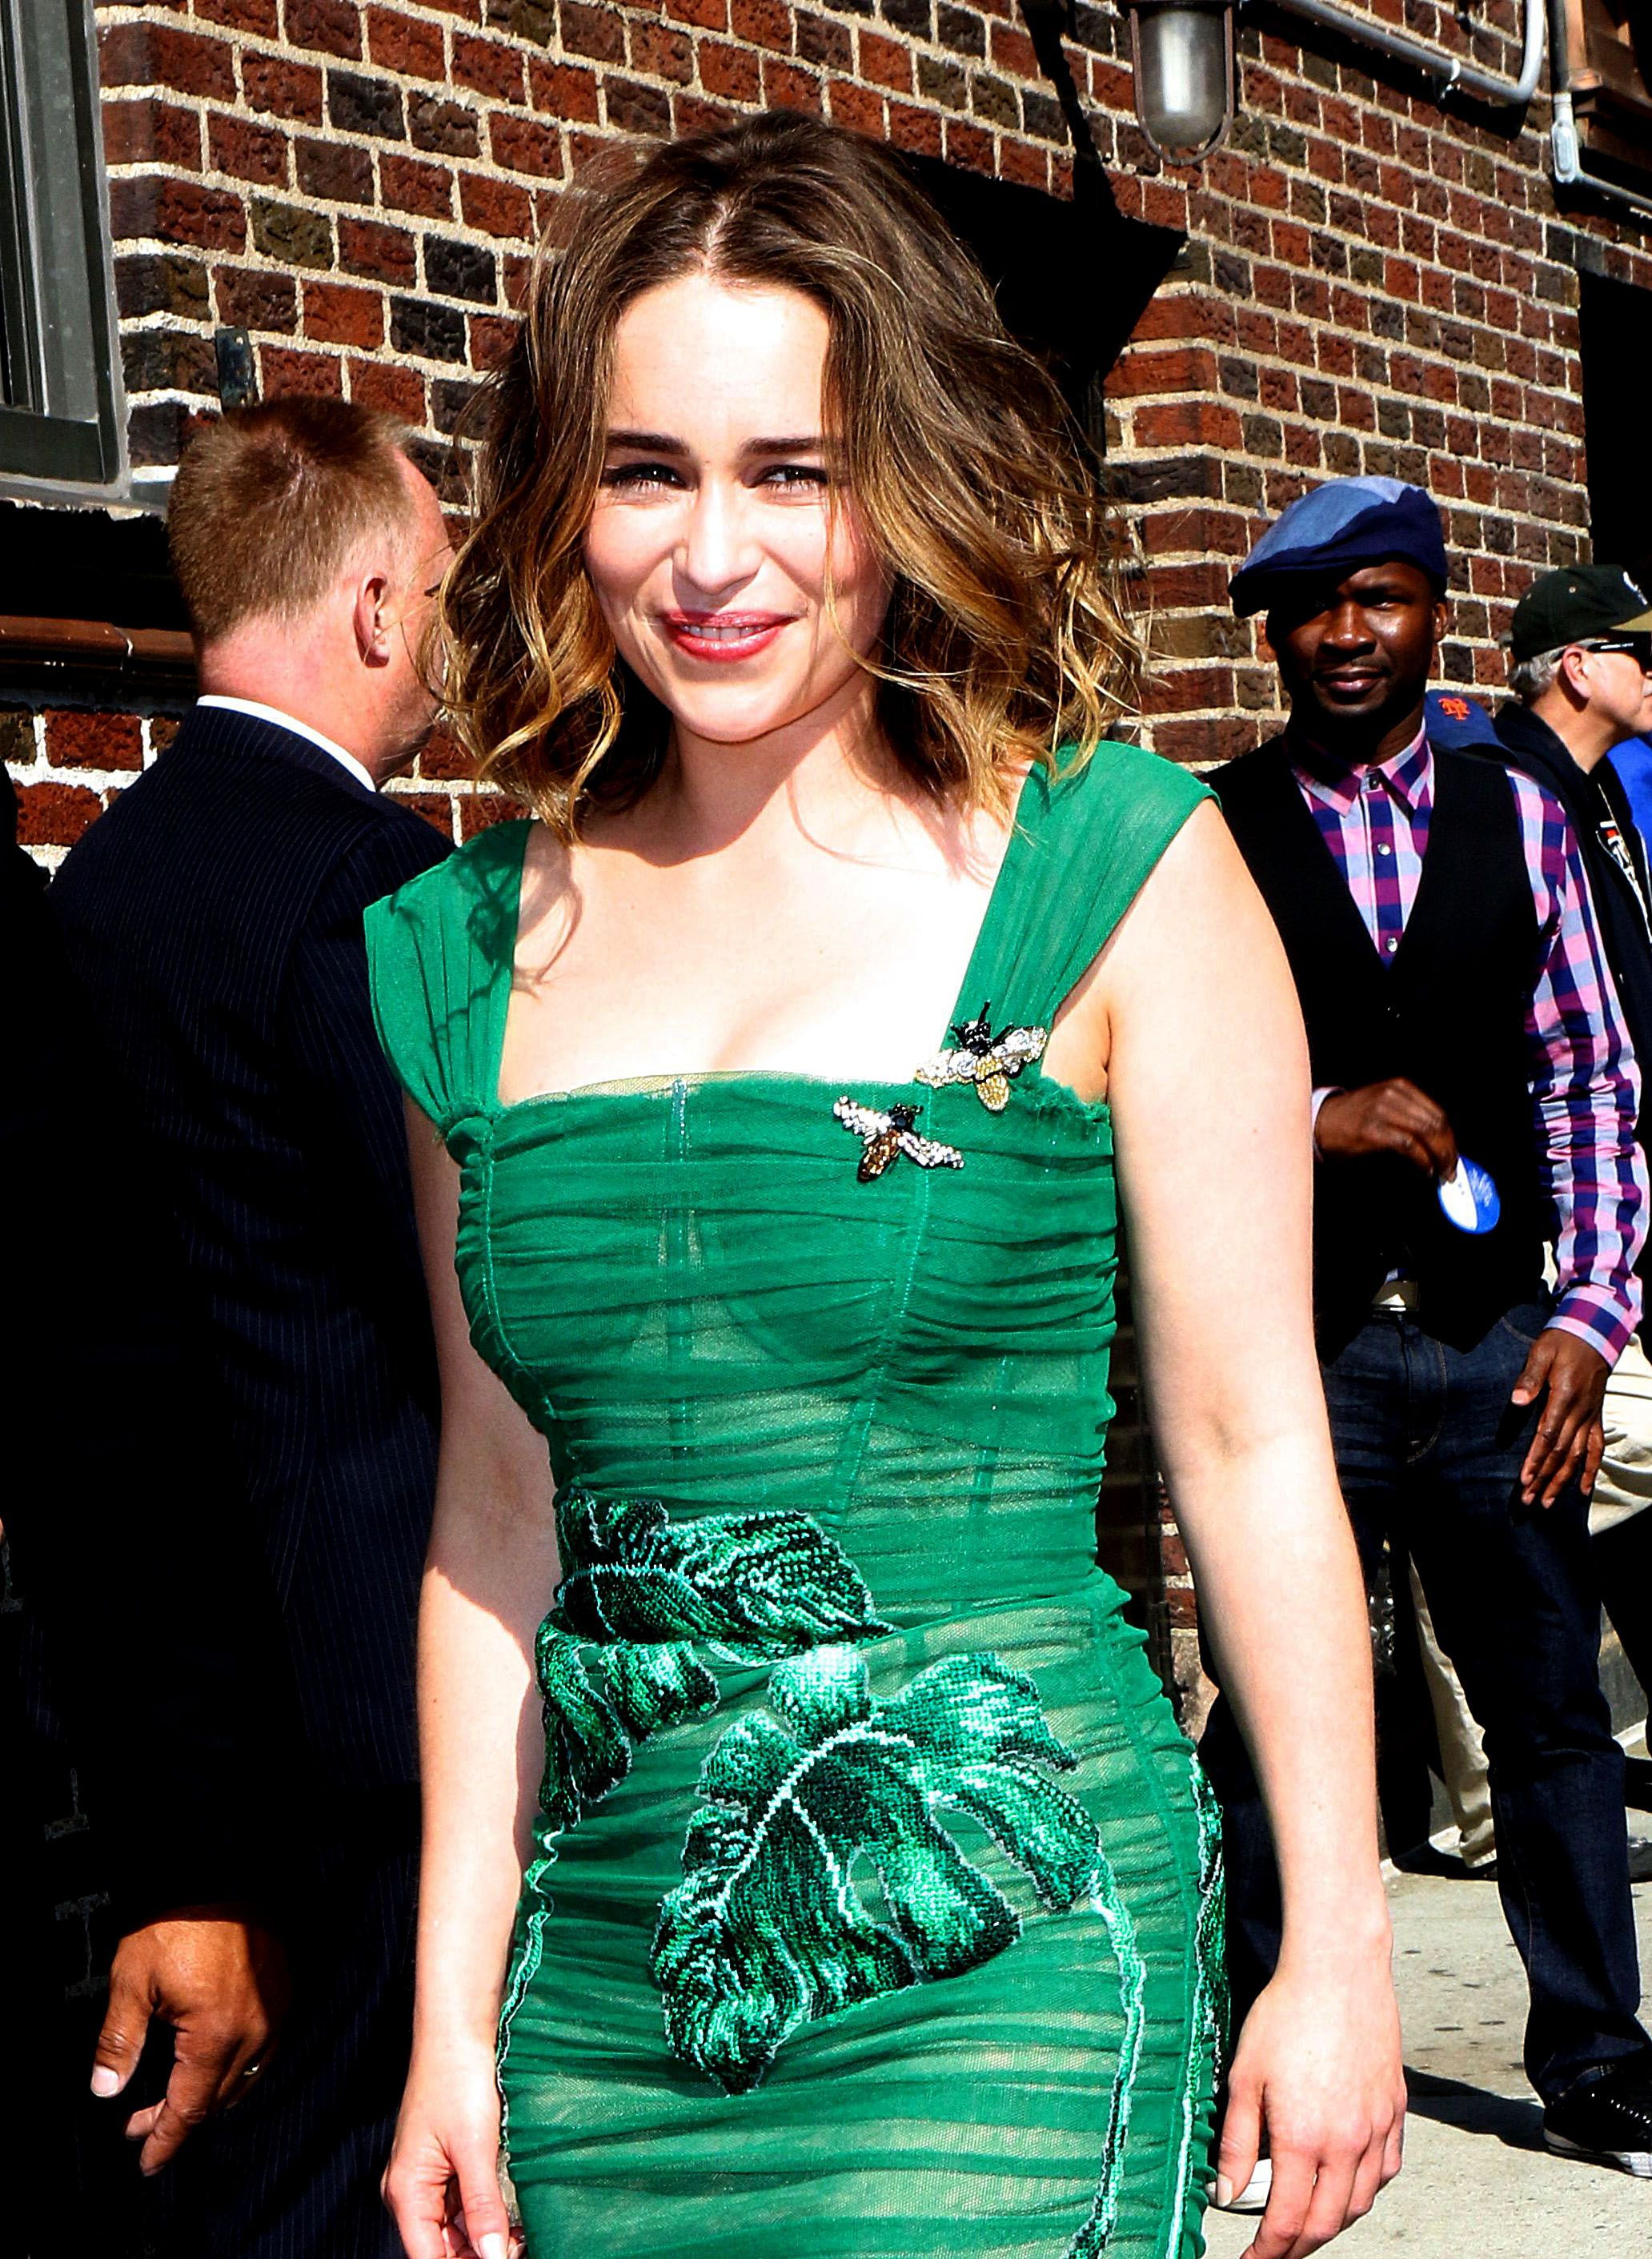 Emilia Clarke at the Ed Sullivan Theater in New York City, 05/23/16